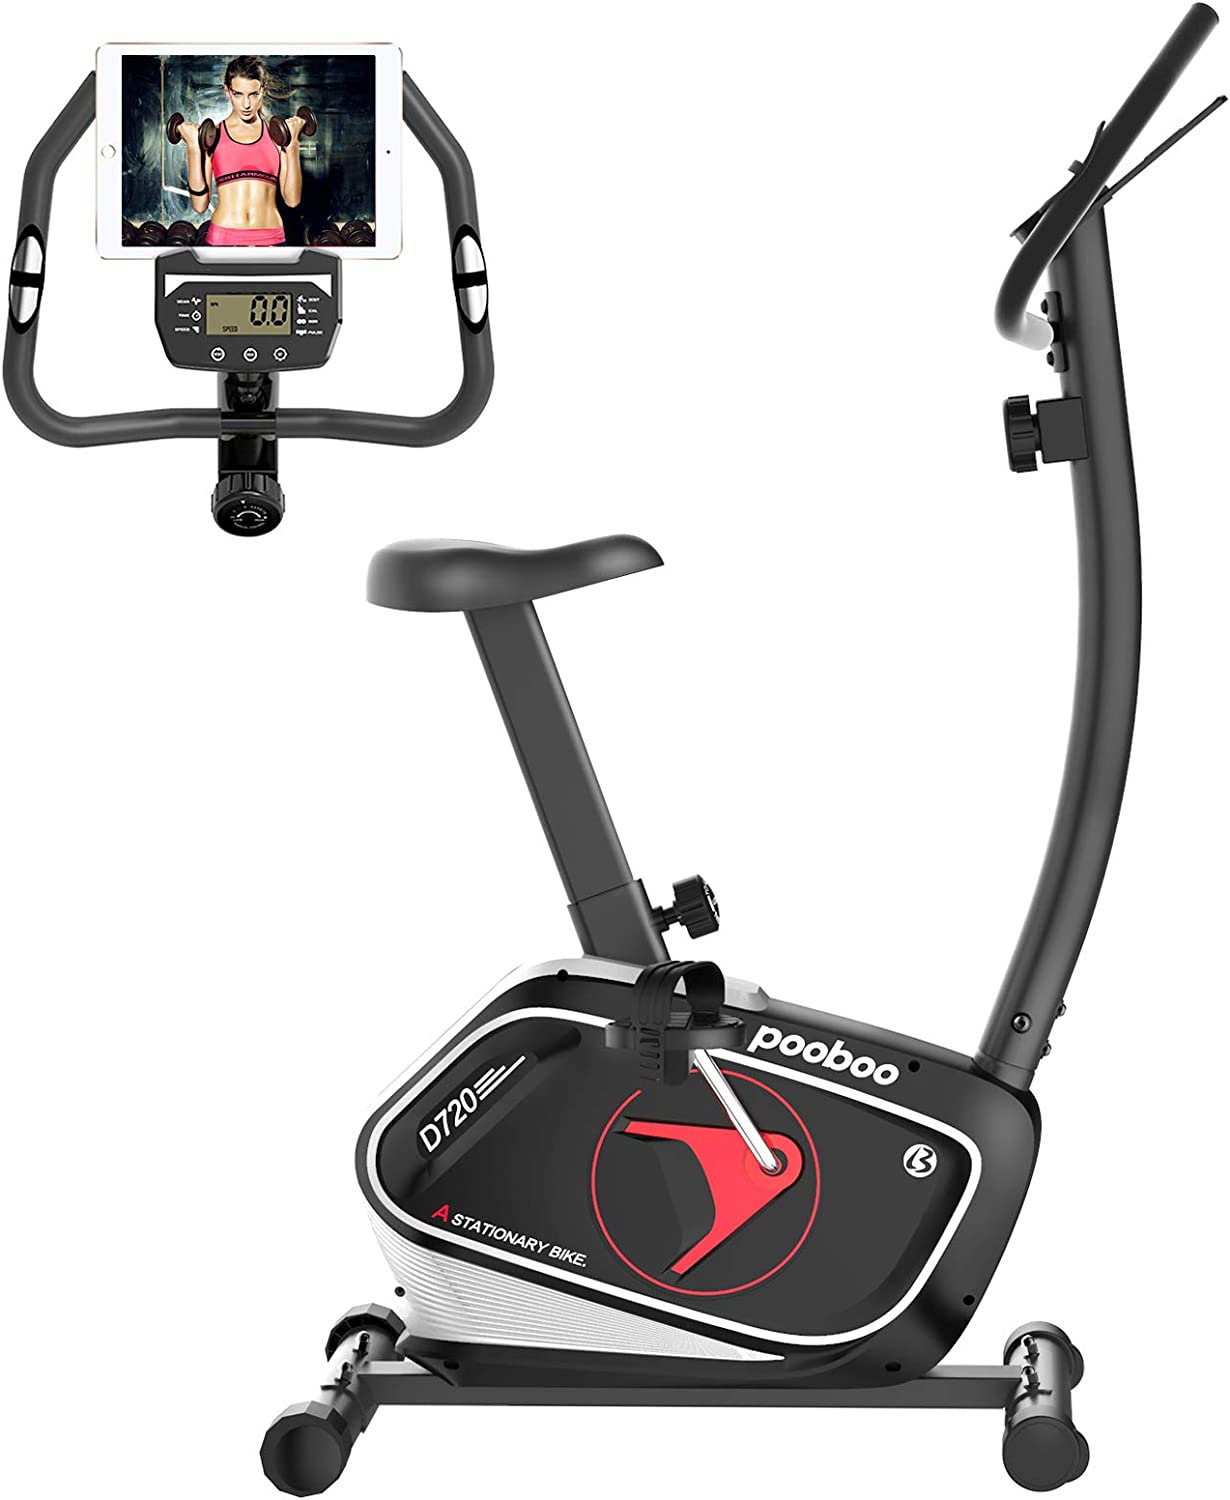 pooboo Magnetic Exercise Bike Upright Exercise Bikes Stationary Bike with Adjustable Seat for Home Office Workout with with LCD Display & Ipad Mount